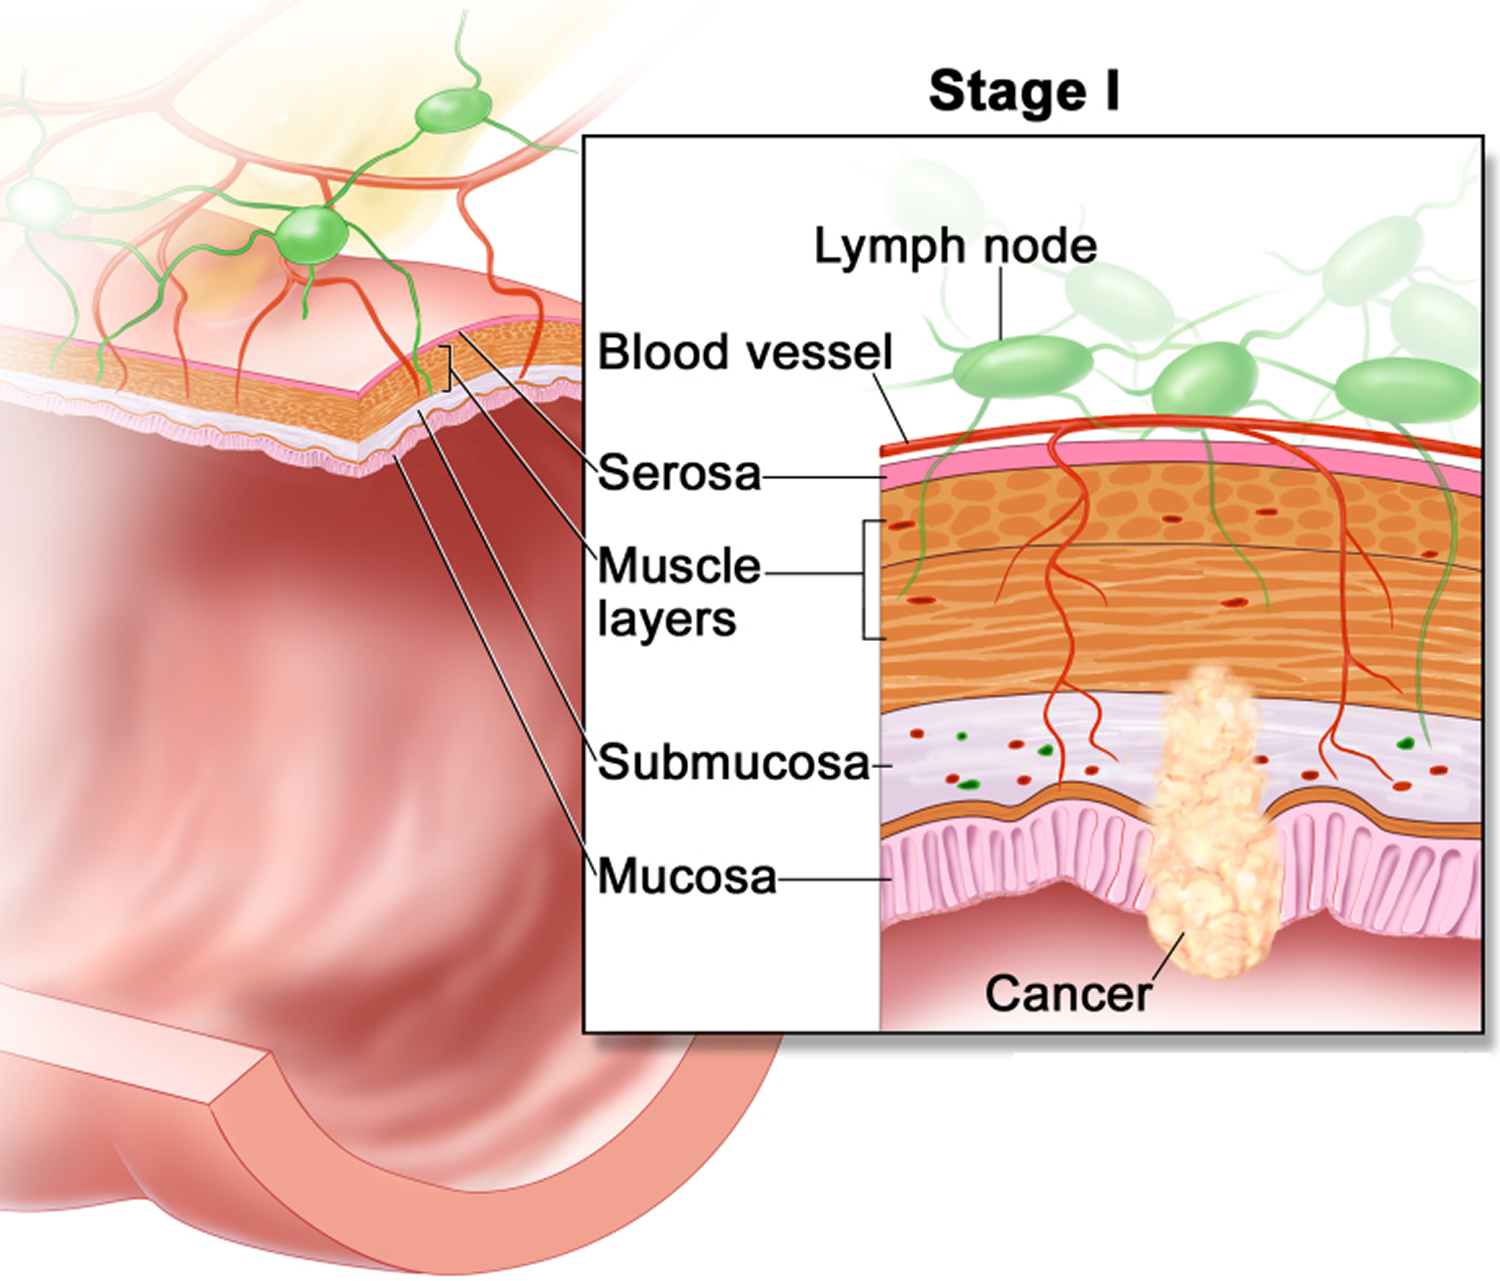 colon cancer - stage 1